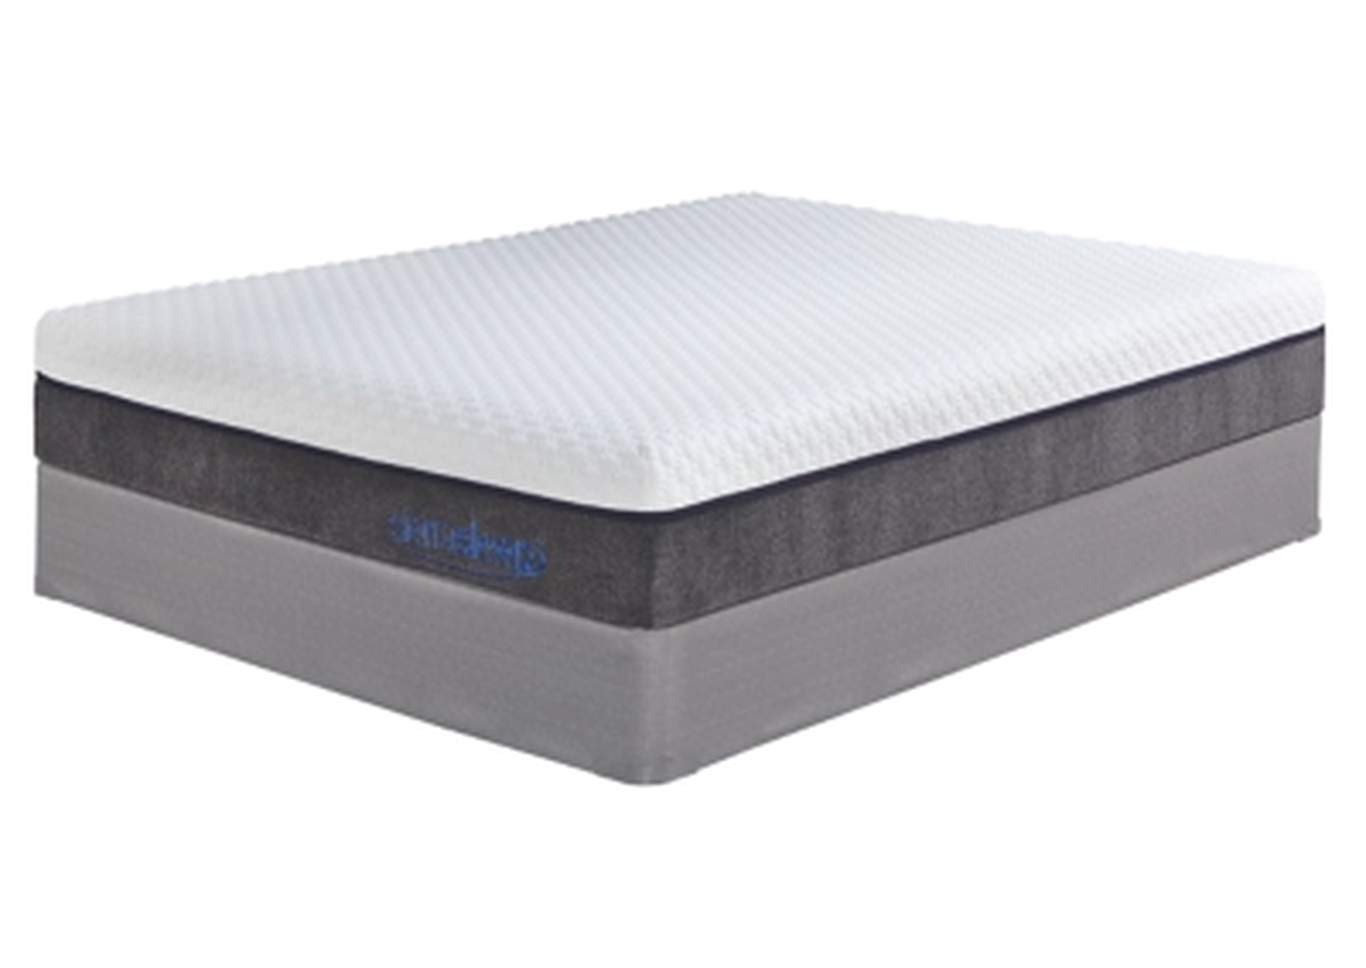 Mygel Hybrid 1100 Queen Mattress,Sierra Sleep by Ashley